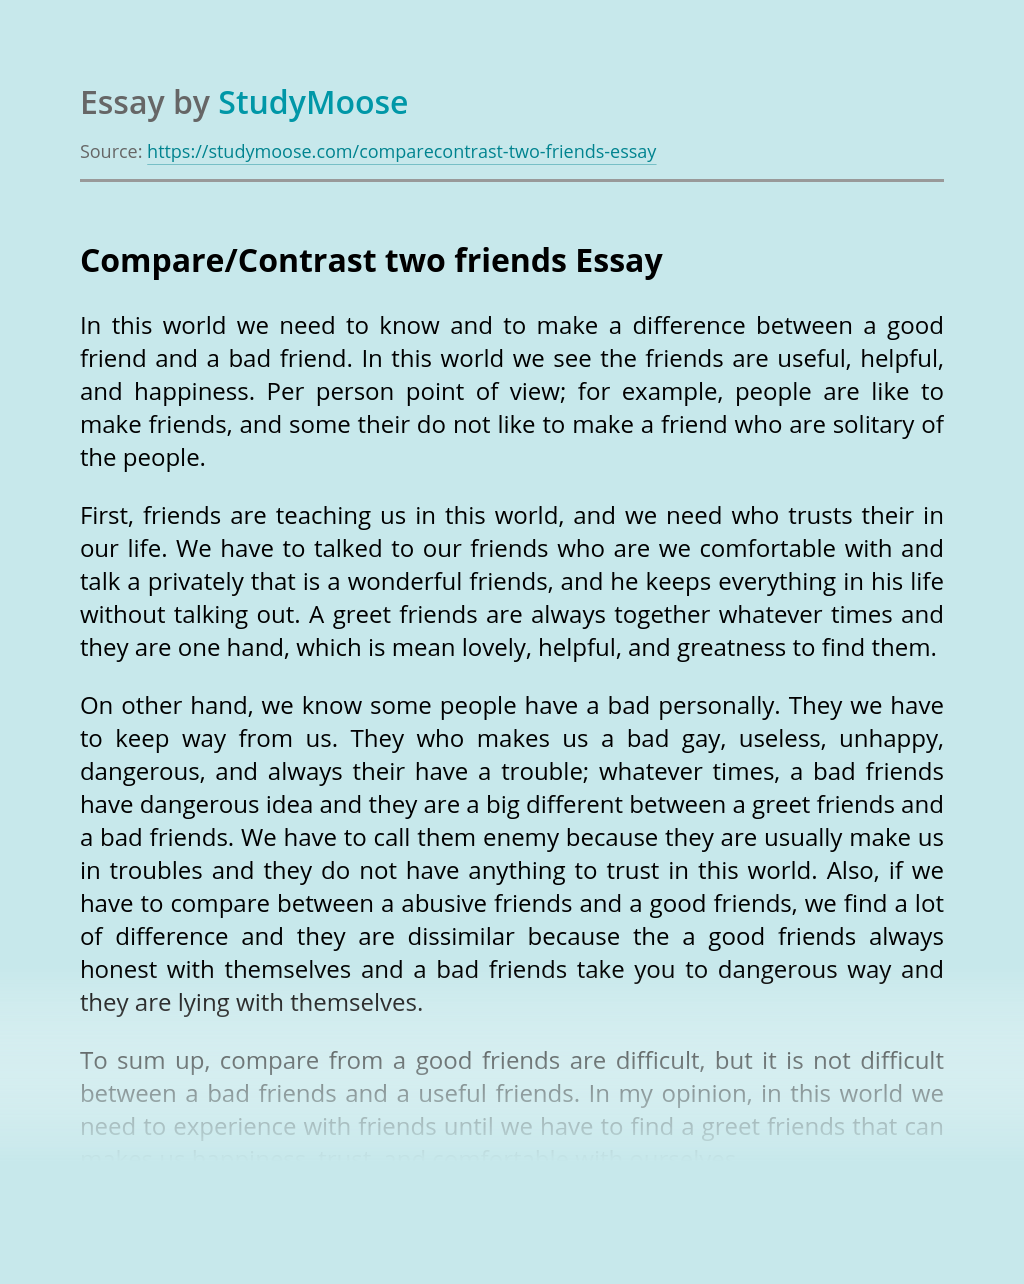 Compare/Contrast two friends